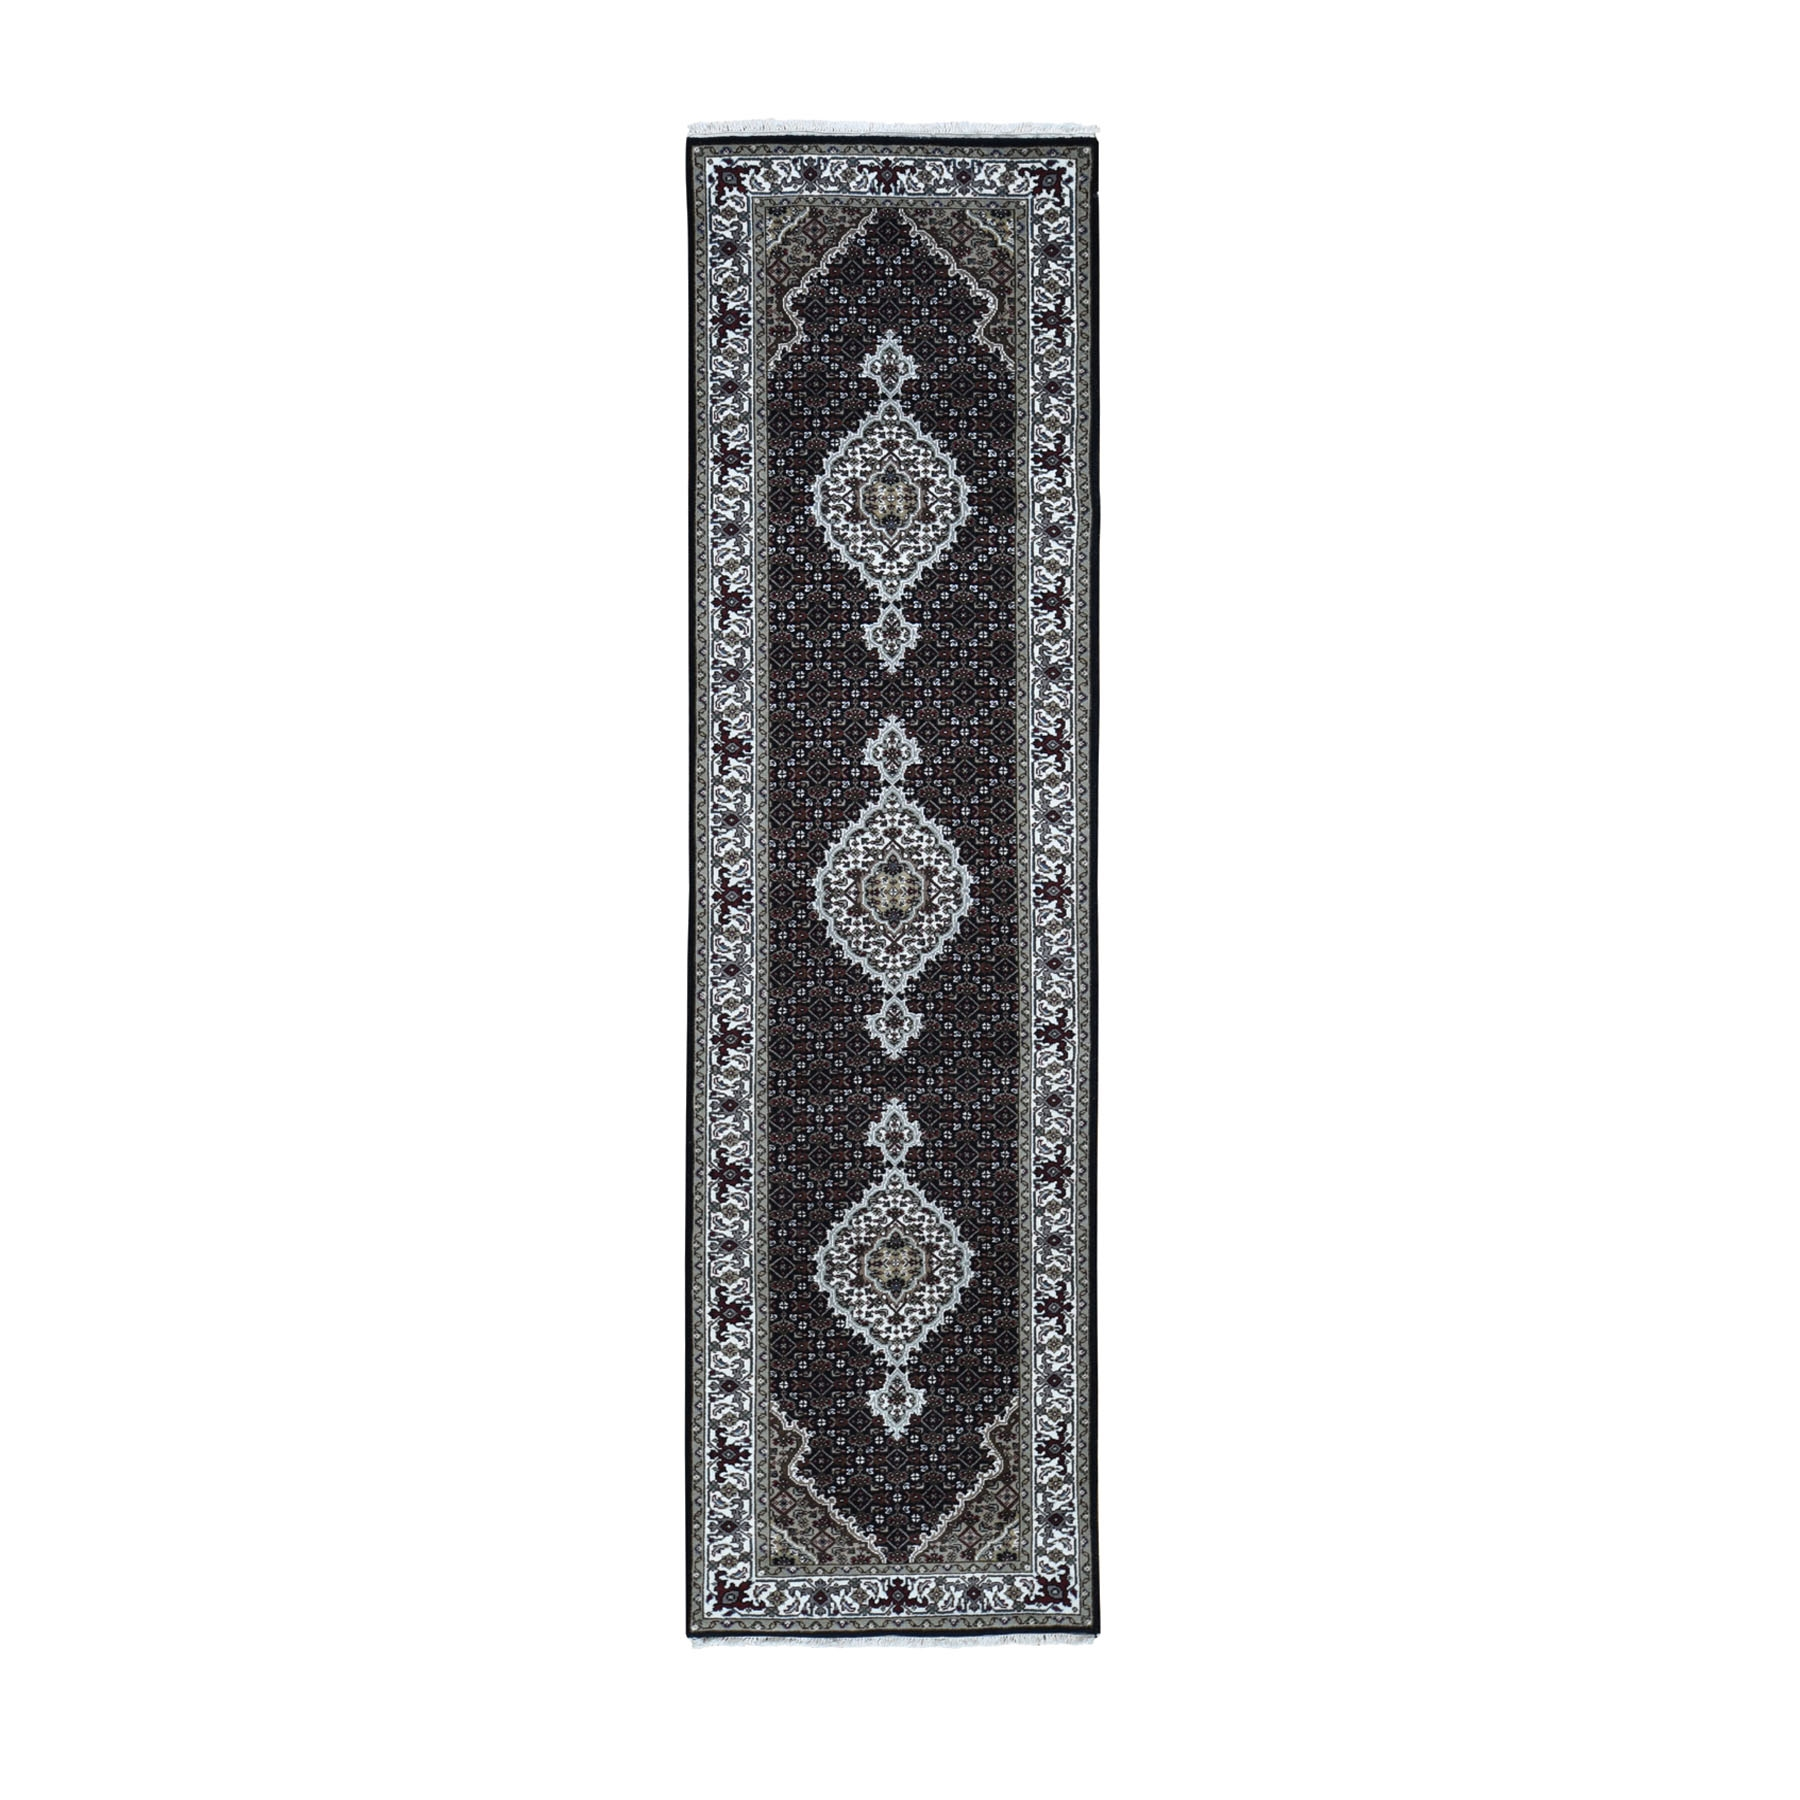 Pirniakan Collection Hand Knotted Black Rug No: 0196636